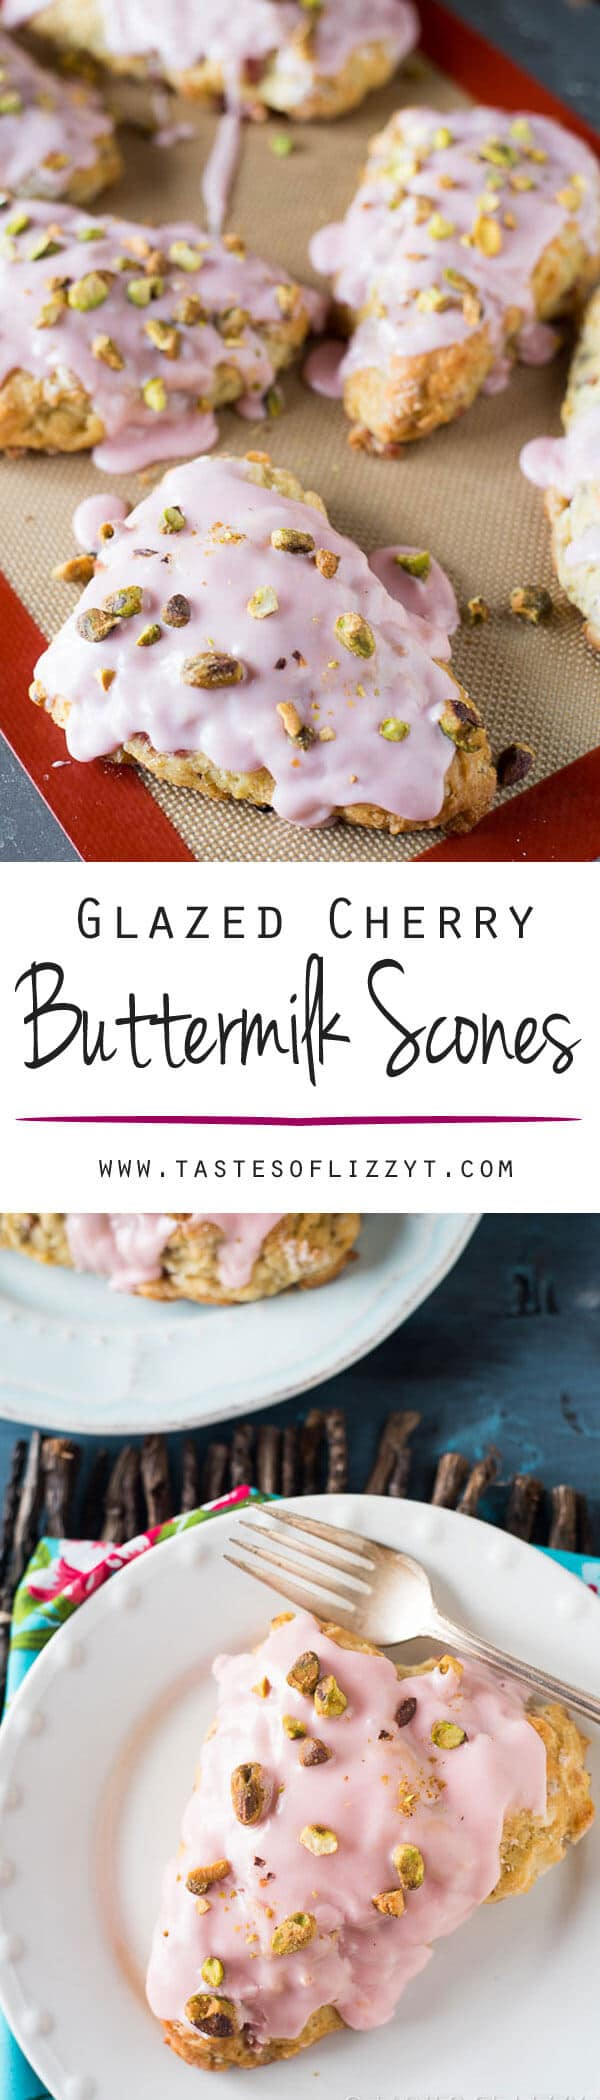 Learn how to make light, buttery, buttermilk scones. These glazed cherry buttermilk scones are topped with salty pistachio nuts.